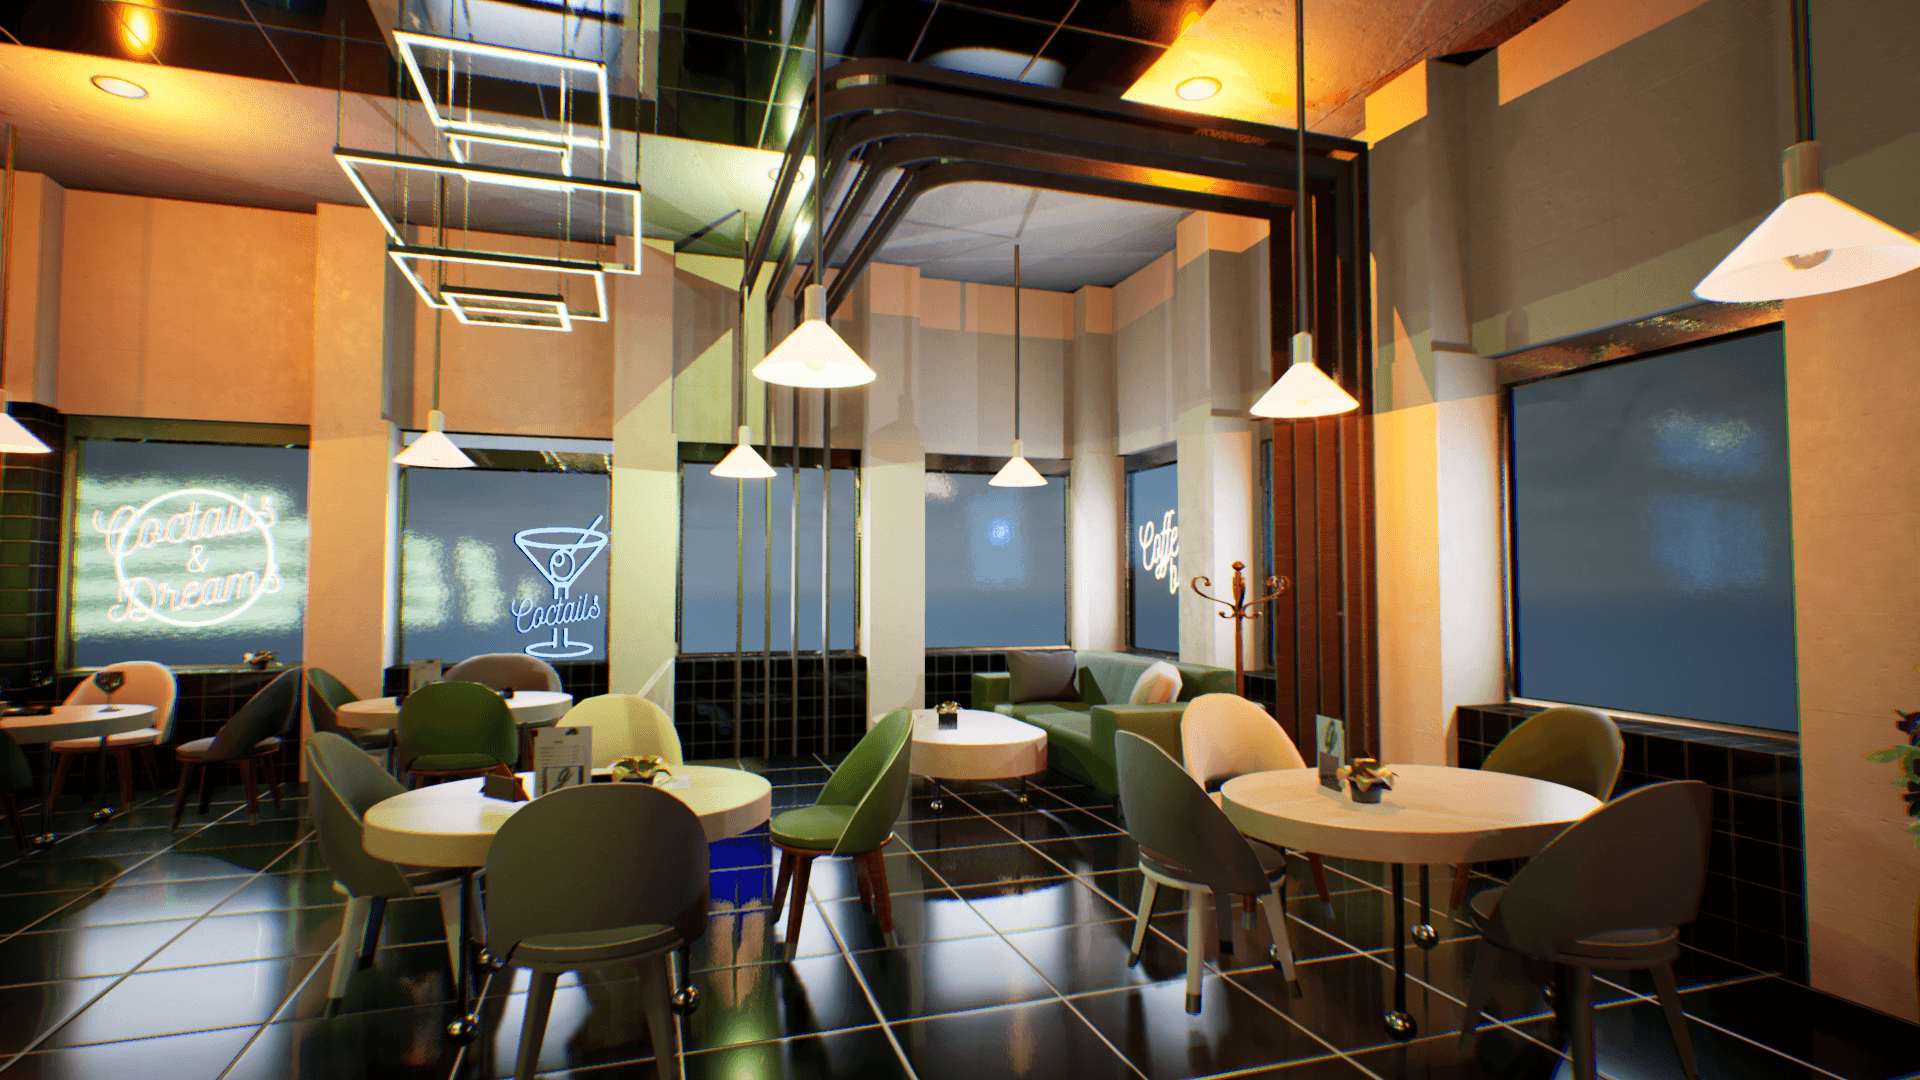 An image showing Green Lounge asset pack, created with Unreal Engine.